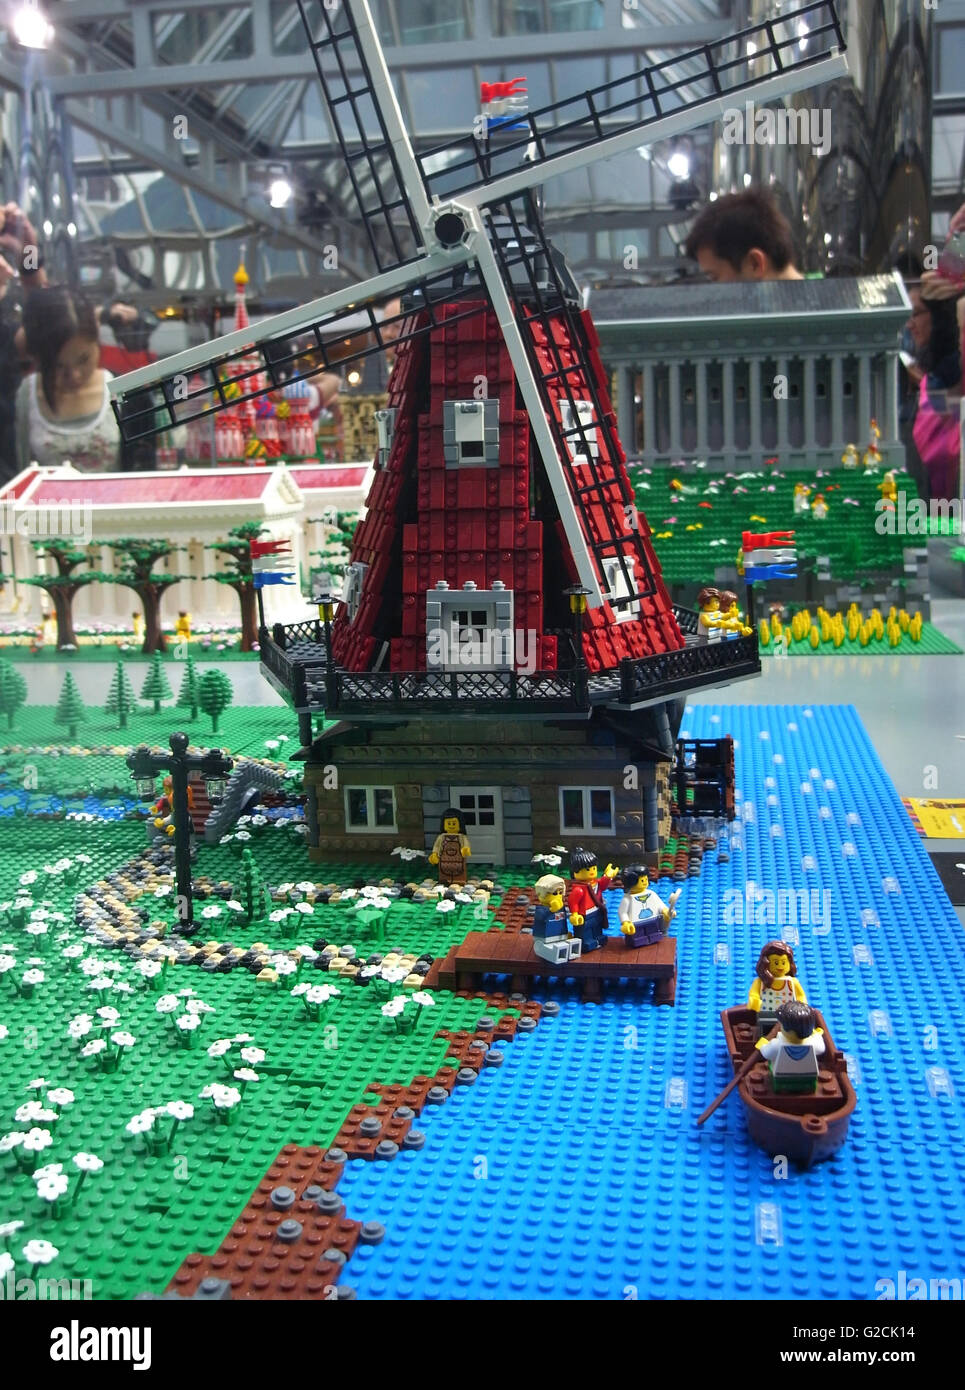 Lego Model build ancient old time day sky toy fun landscape Netherlands Amsterdam windmill grass marry - Stock Image